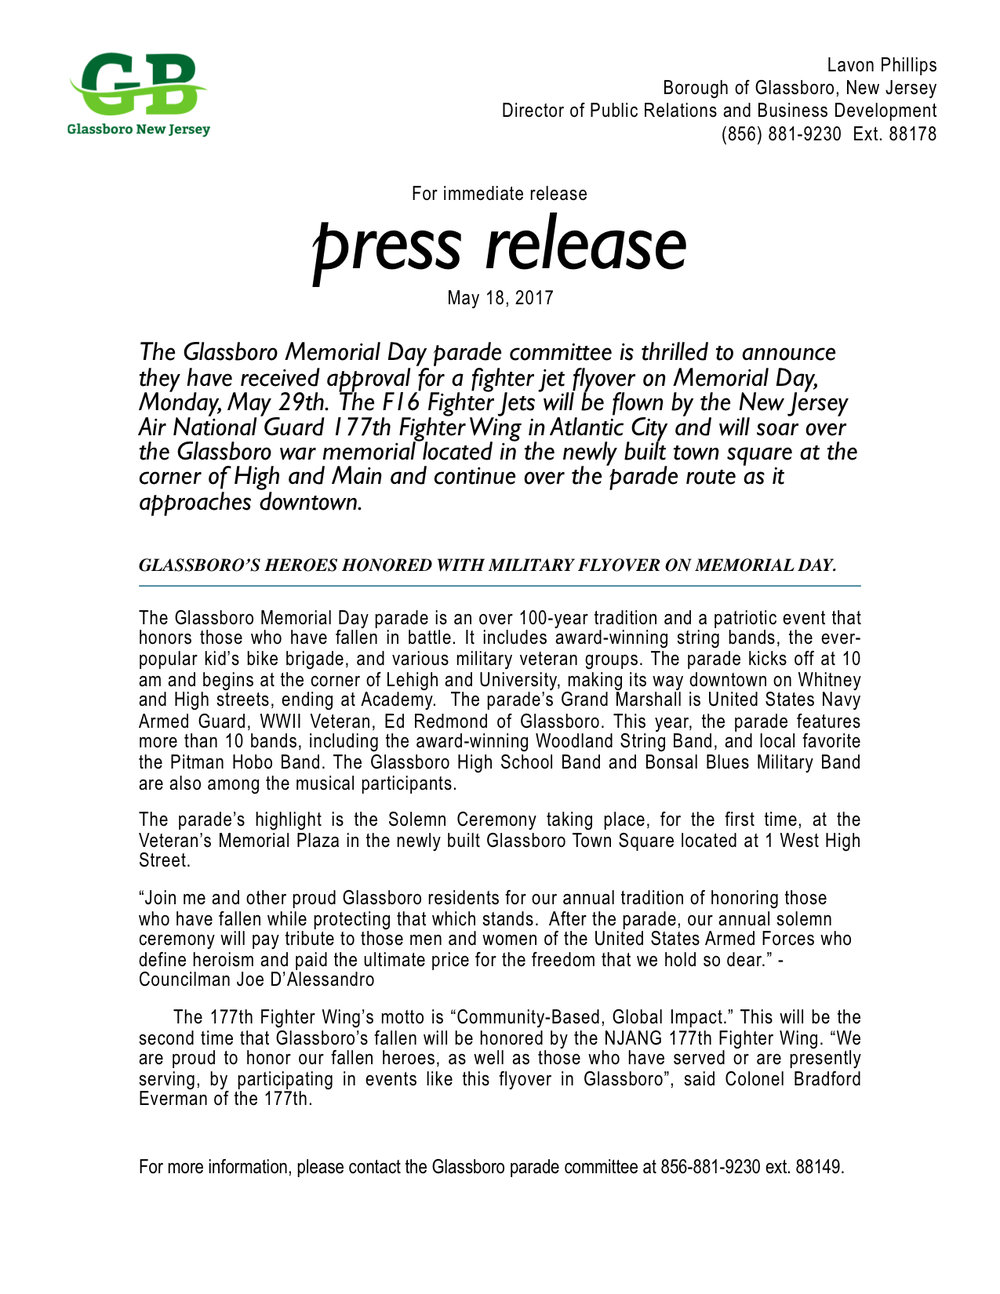 glassboro memorial day parade press release